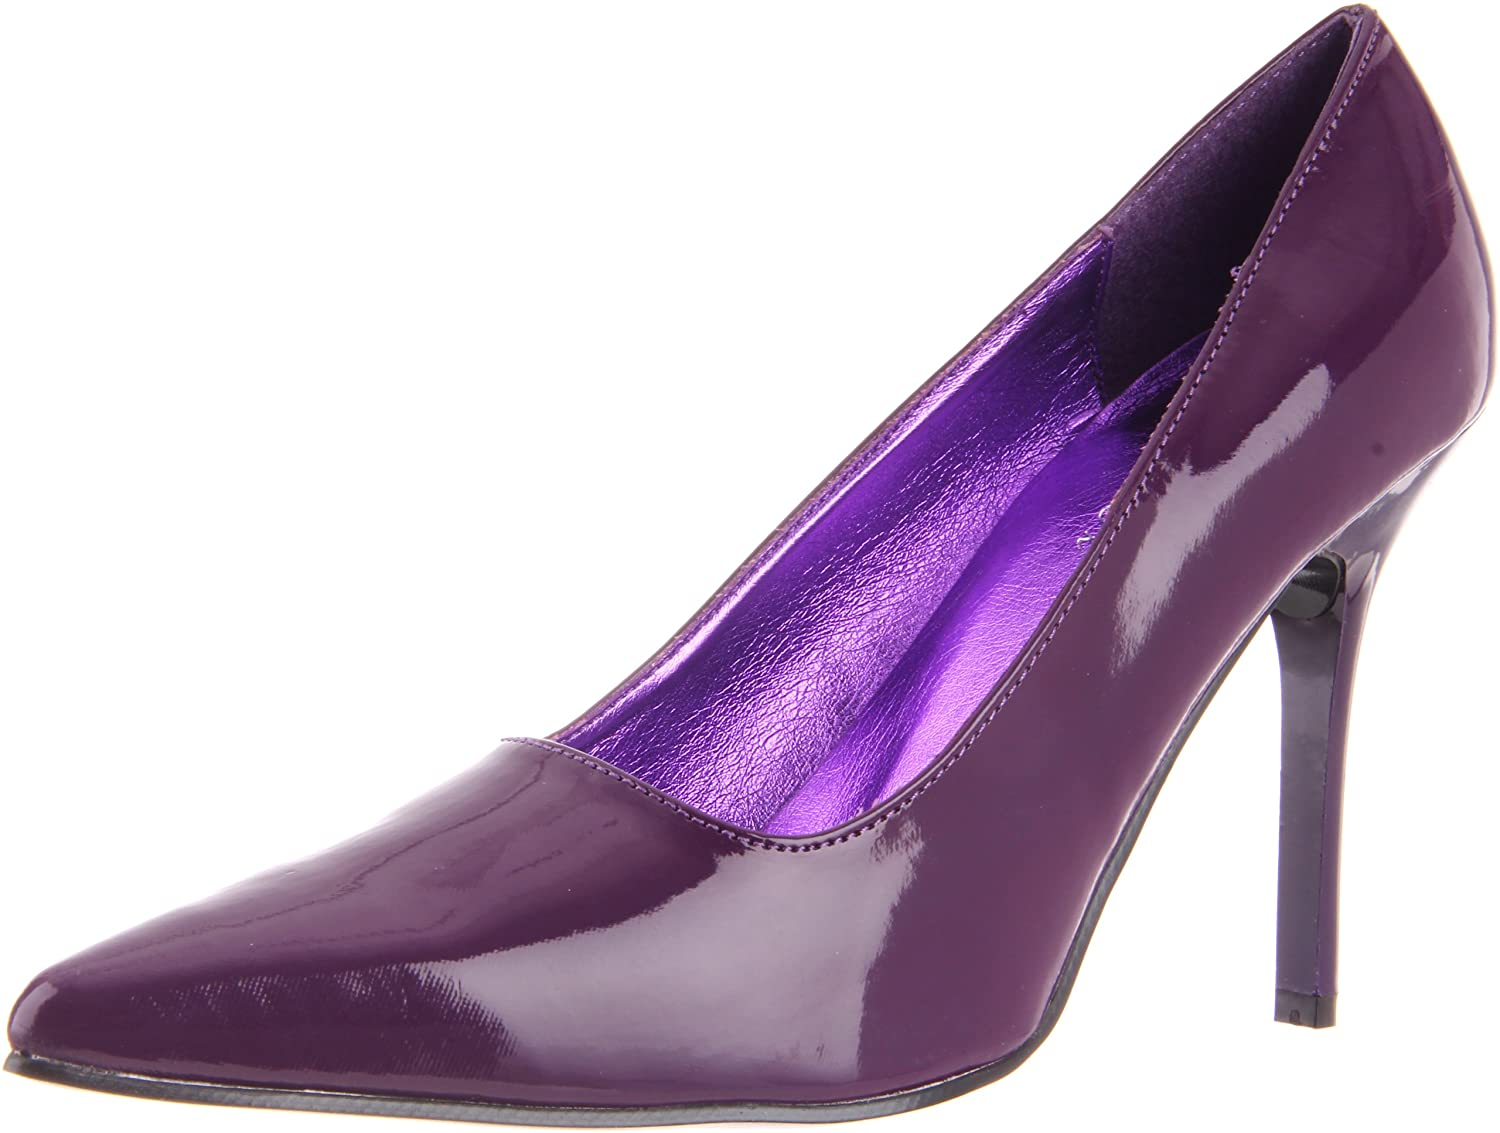 The Highest Heel Women's Classic Pump B003HC0Y6I 7 B(M) US|Purple Patent Polyurethane